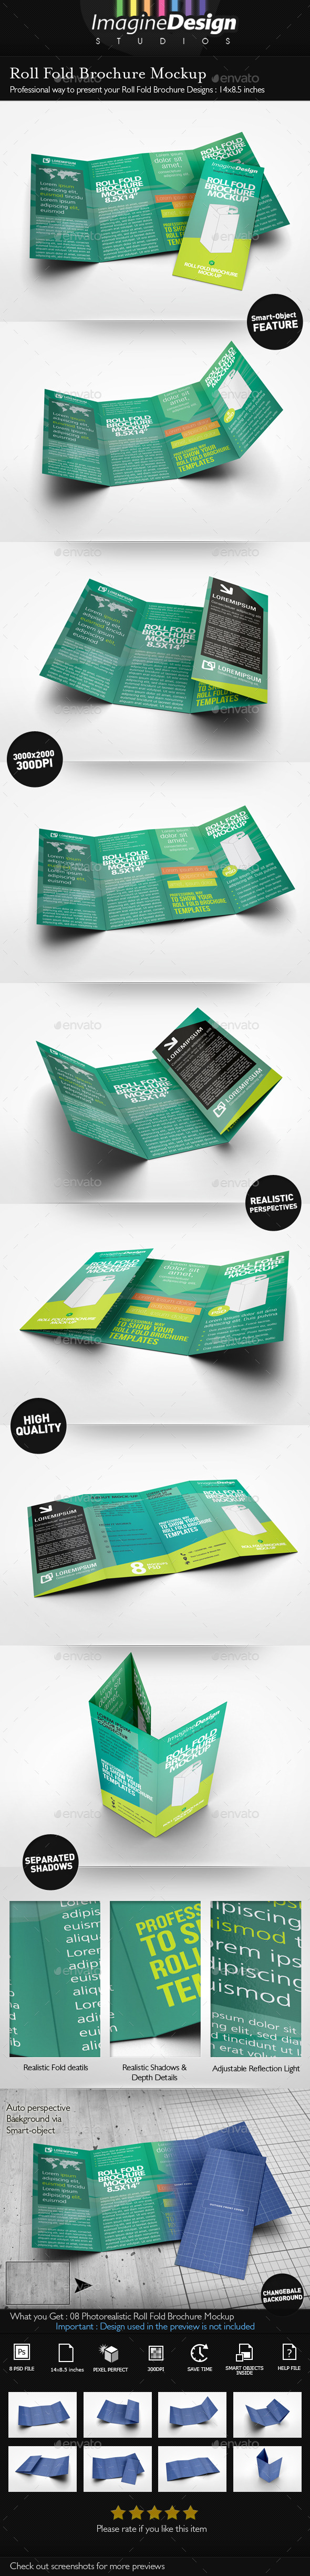 GraphicRiver Roll Fold Brochure Mockup 10020772